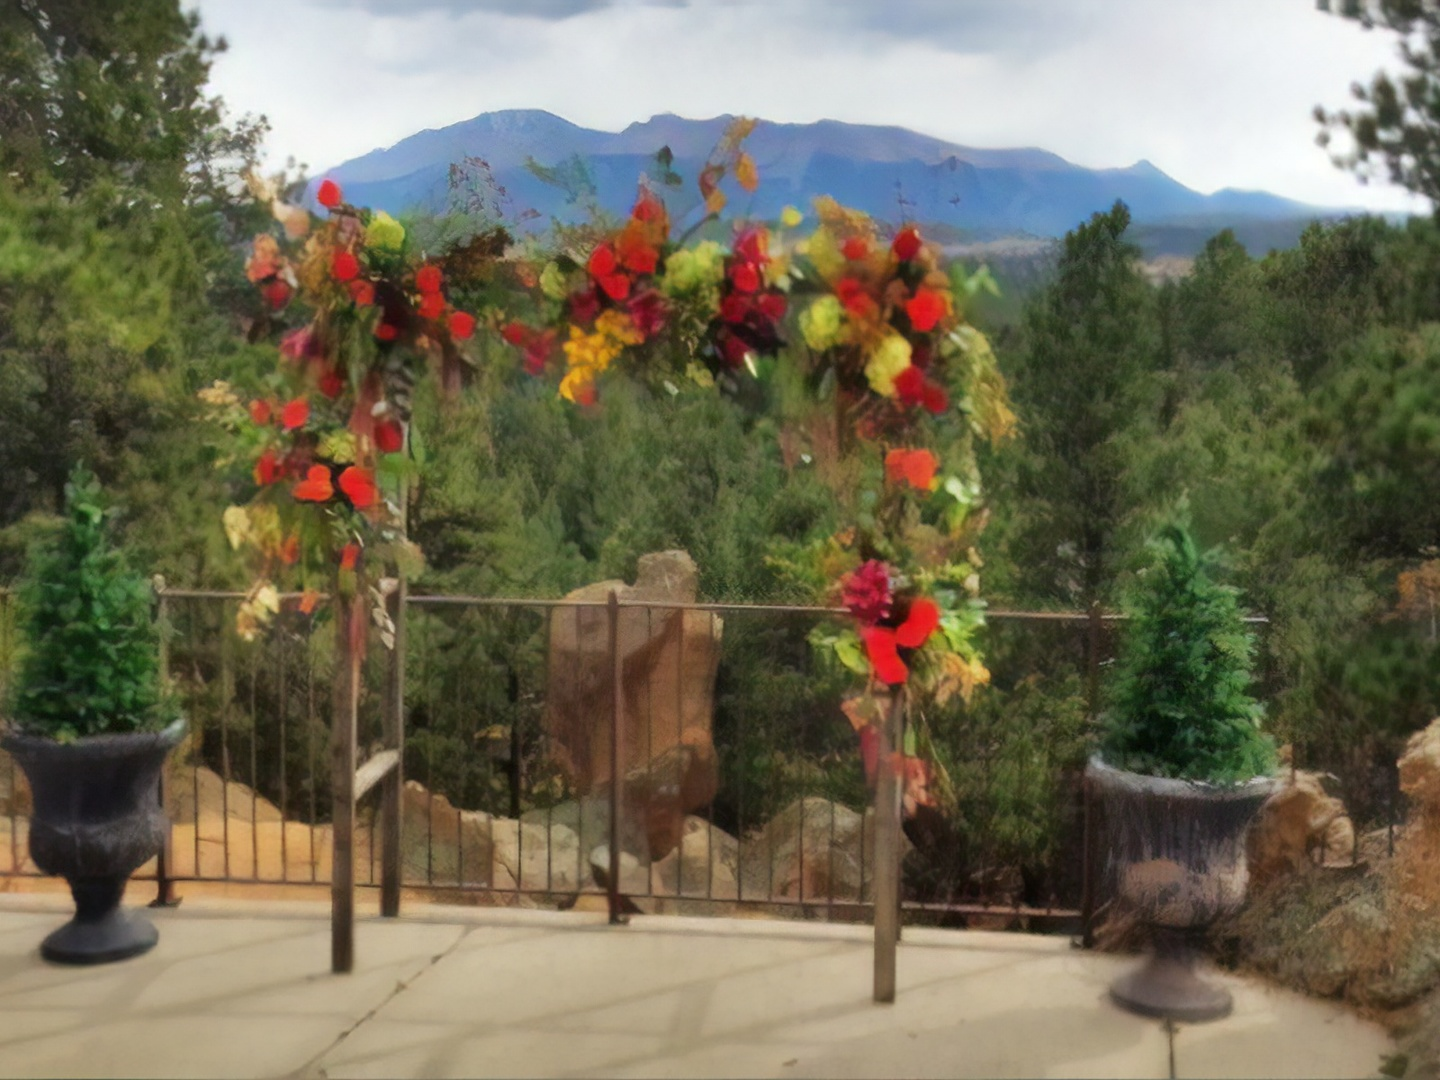 A vase of flowers on a tree at Pikes Peak Paradise.